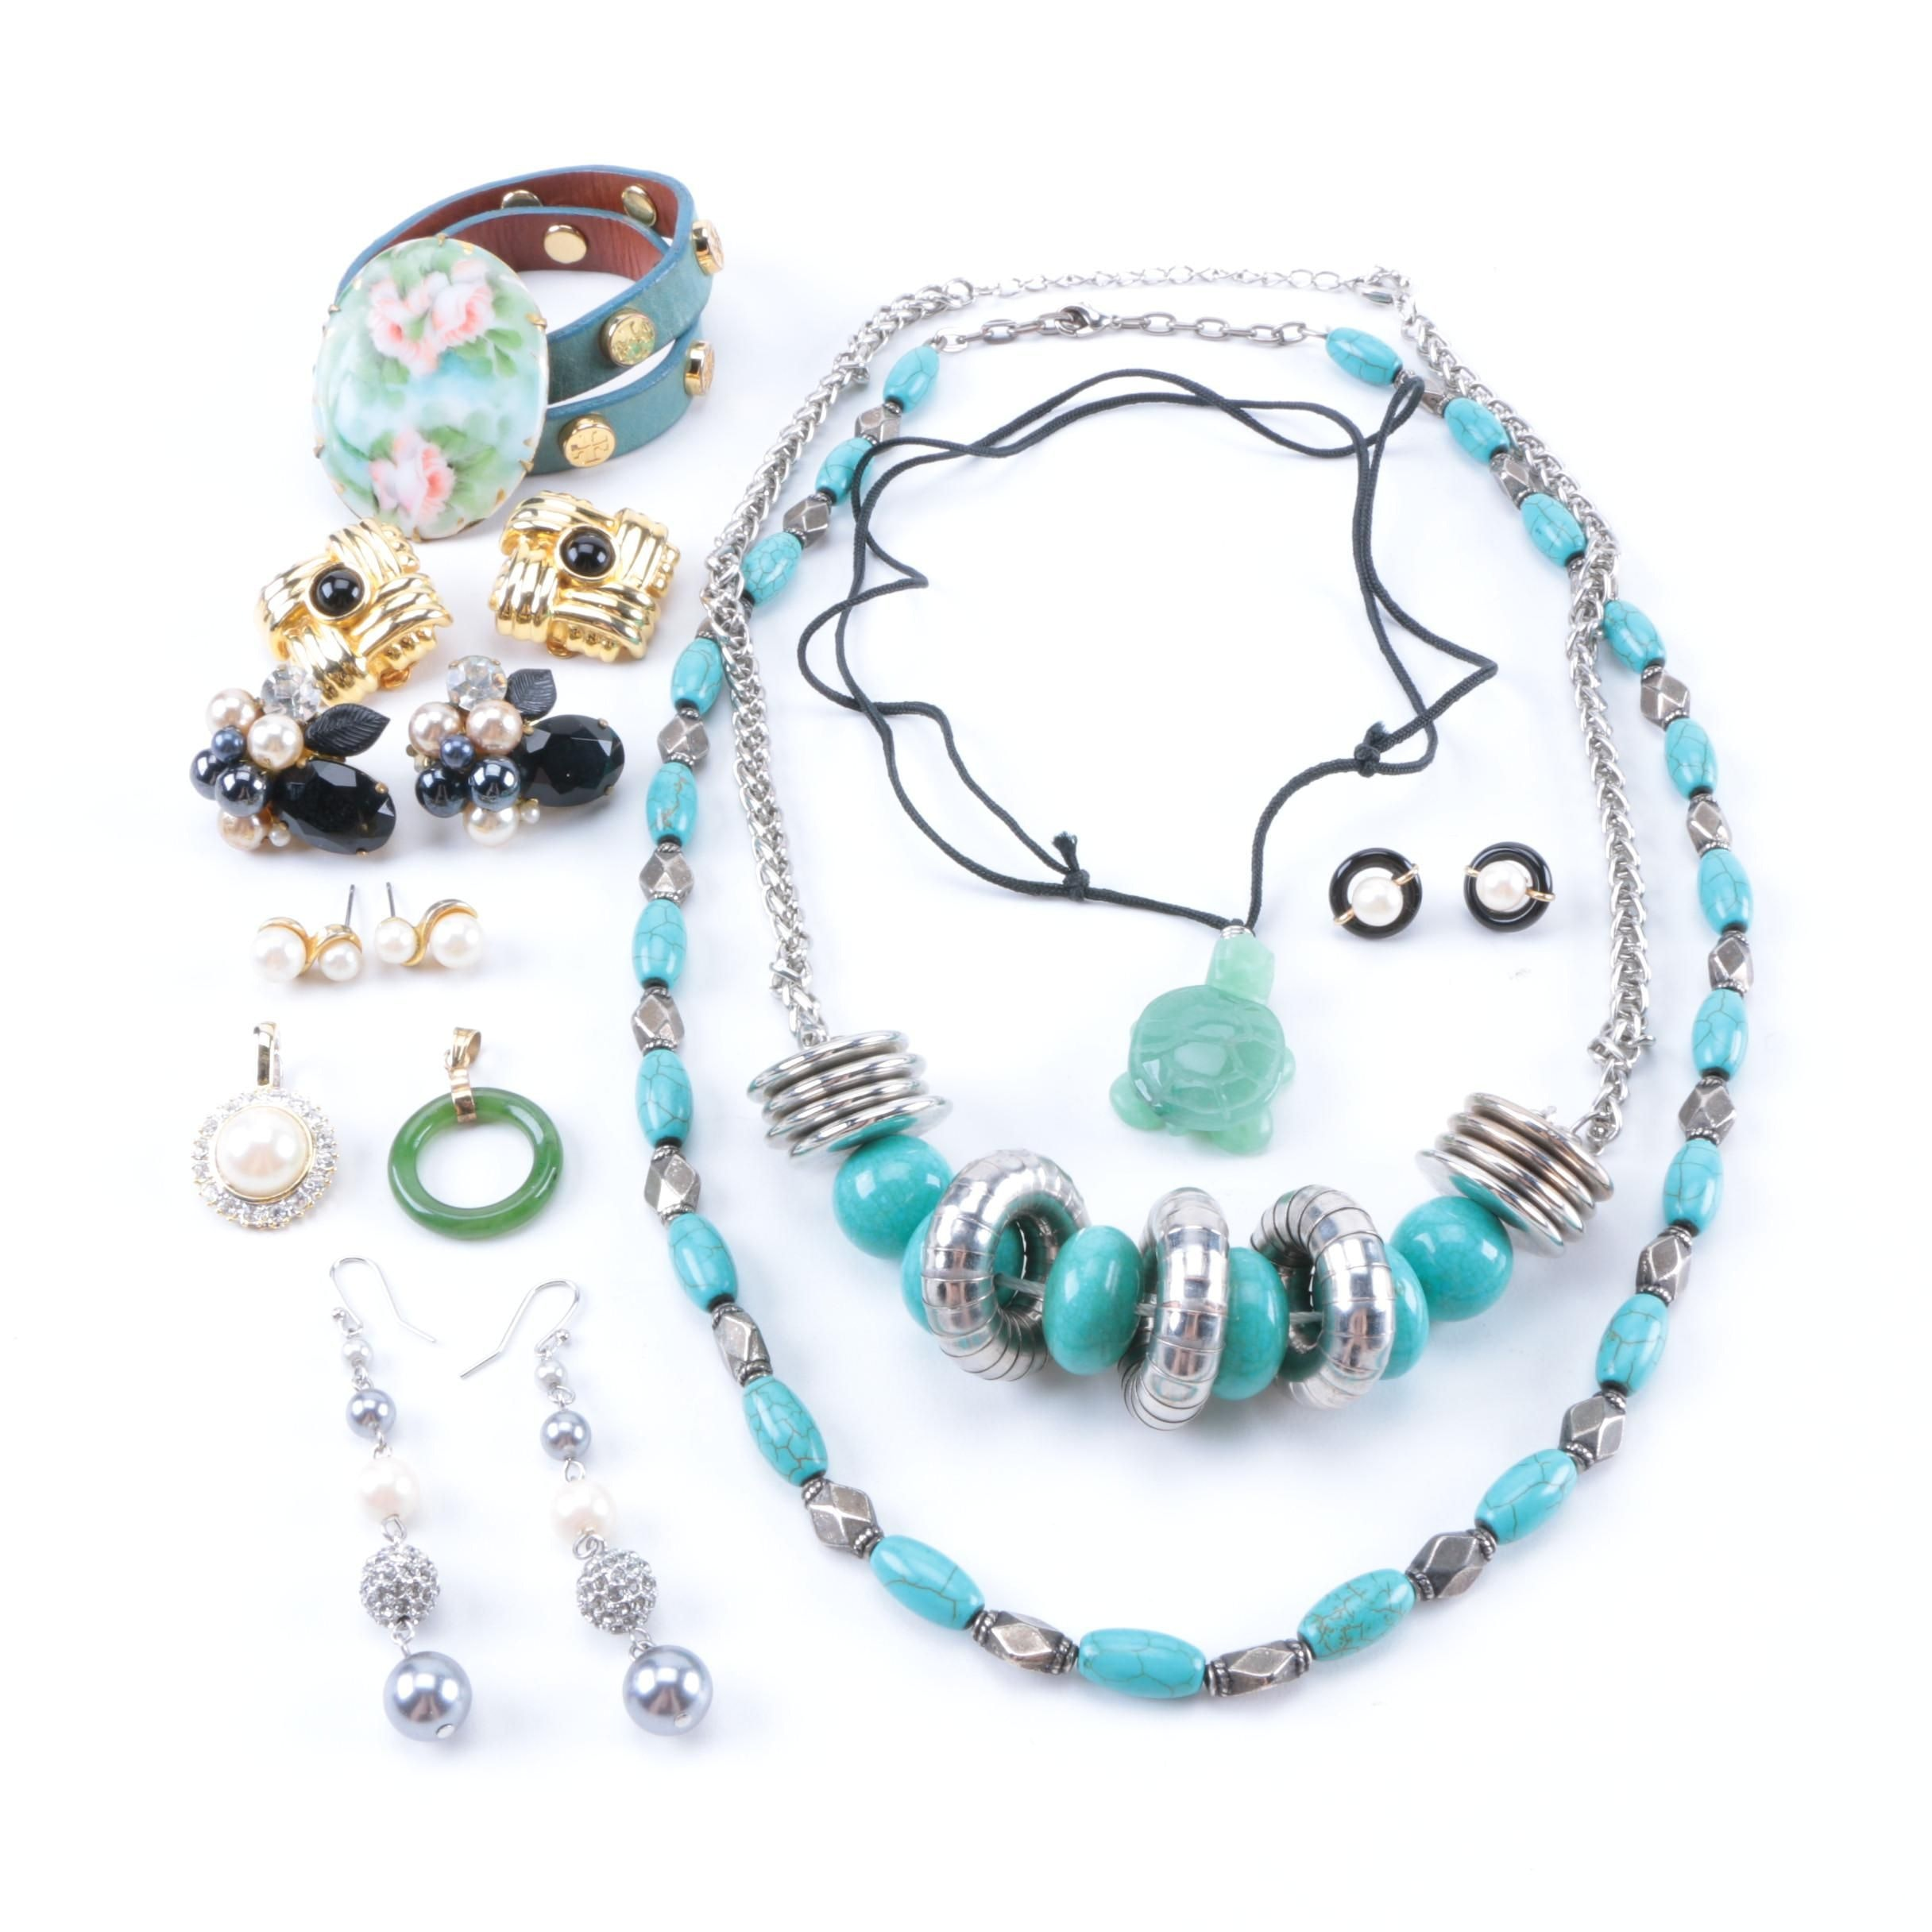 Costume Jewelry Assortment Including Pieces With Stones